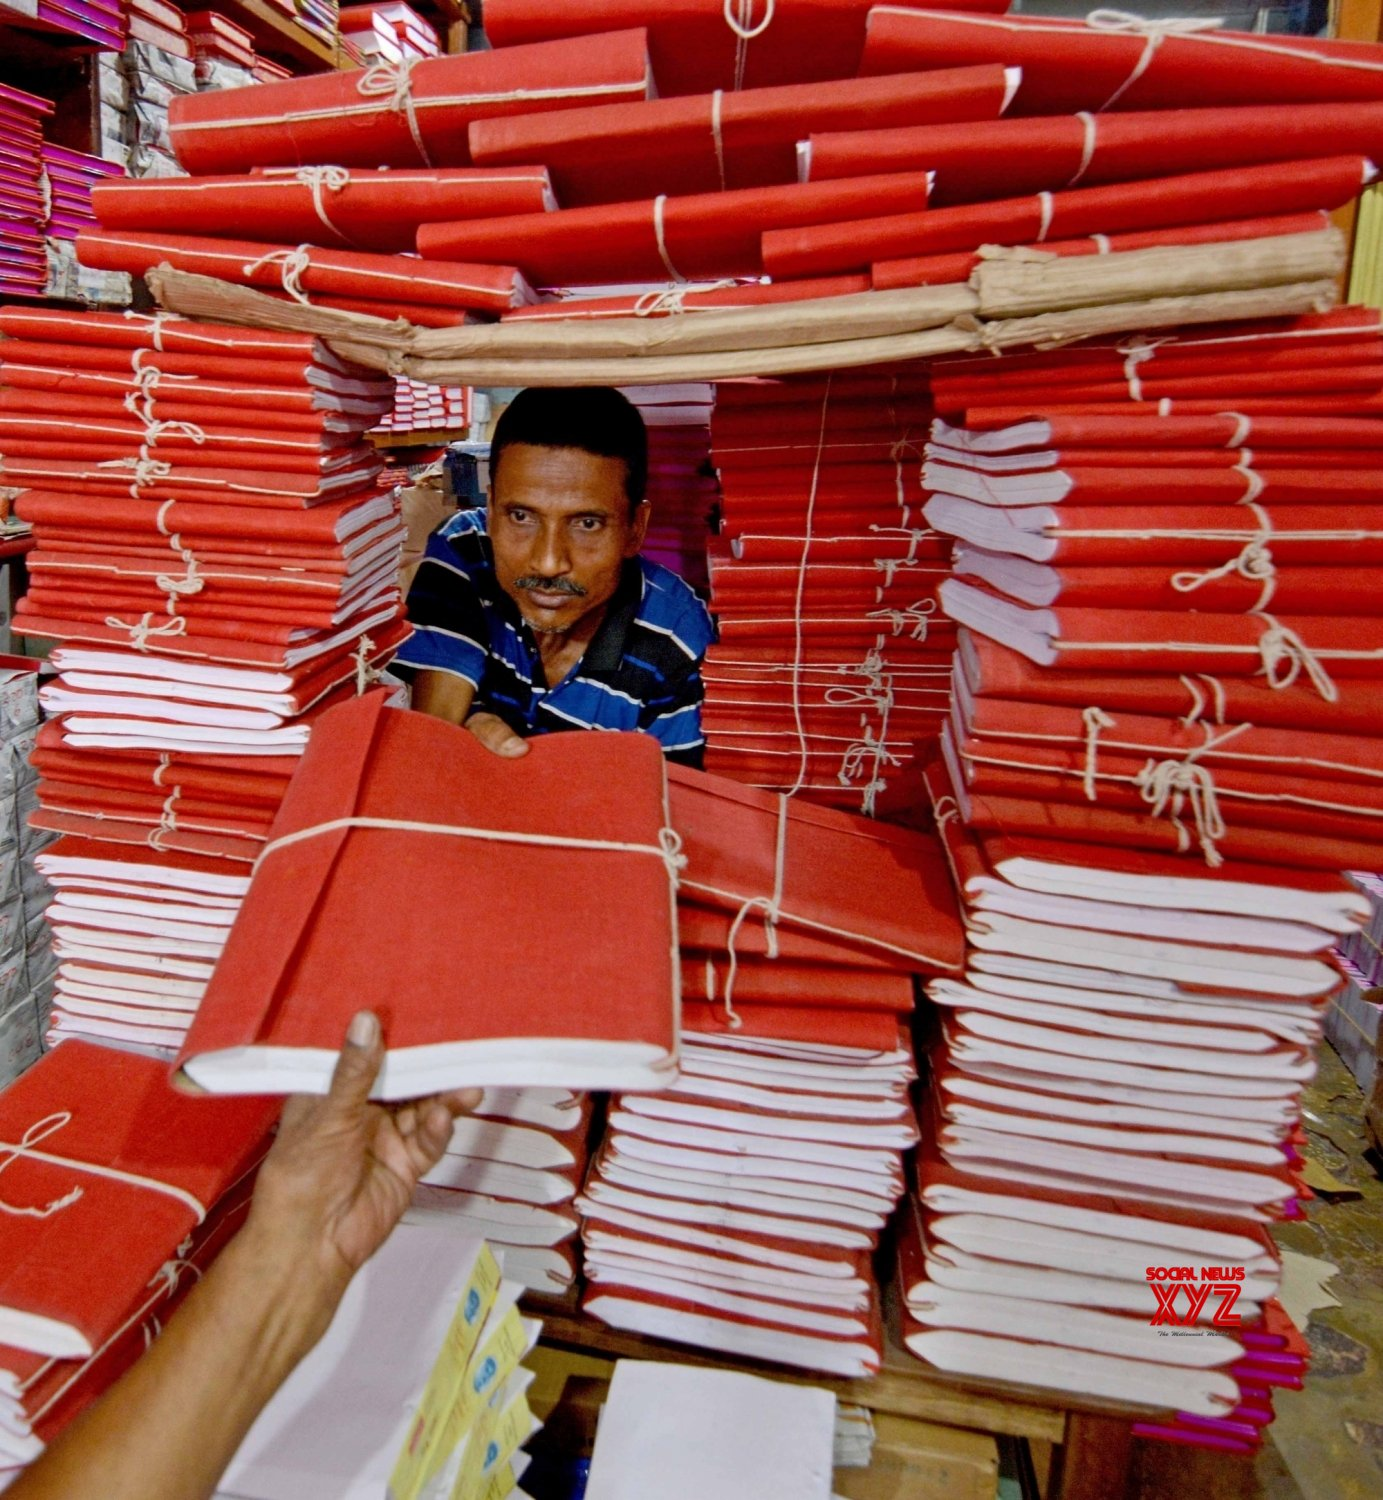 Kolkata: Ledger books being sold ahead of Bengali New Year #Gallery